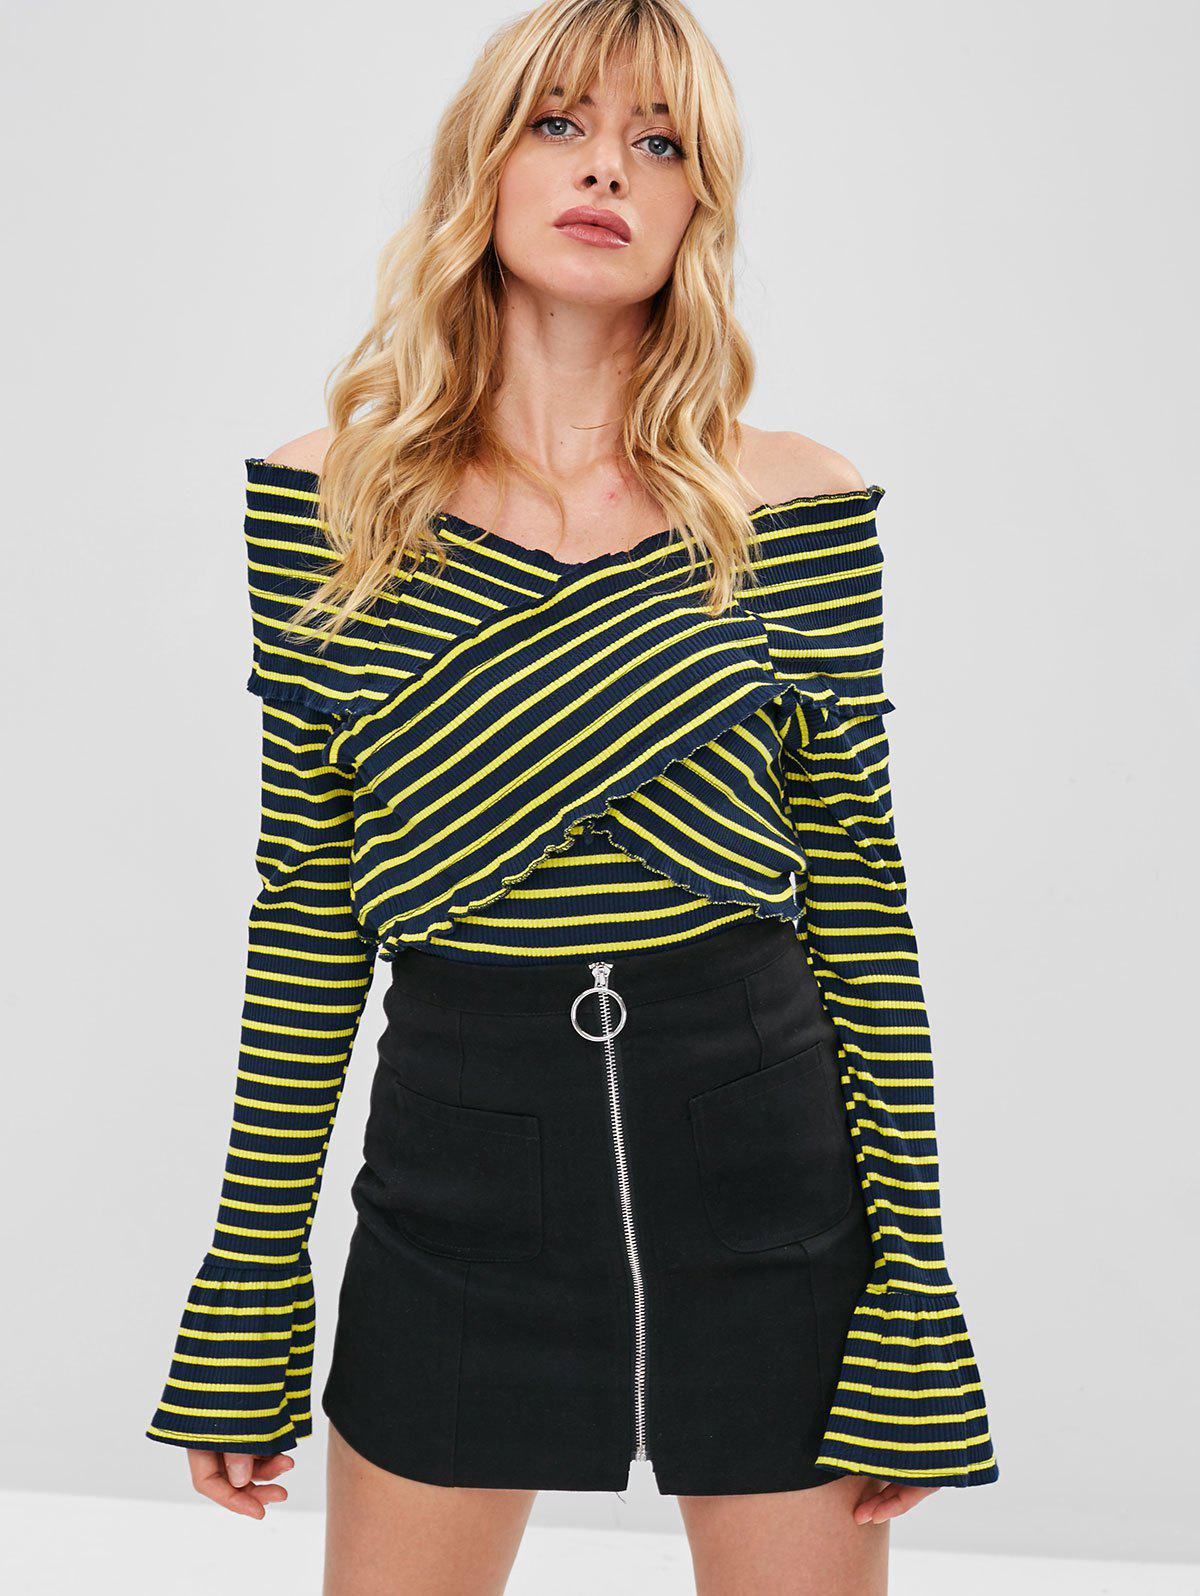 ZAFUL Flare Sleeves Striped Overlap Sweater